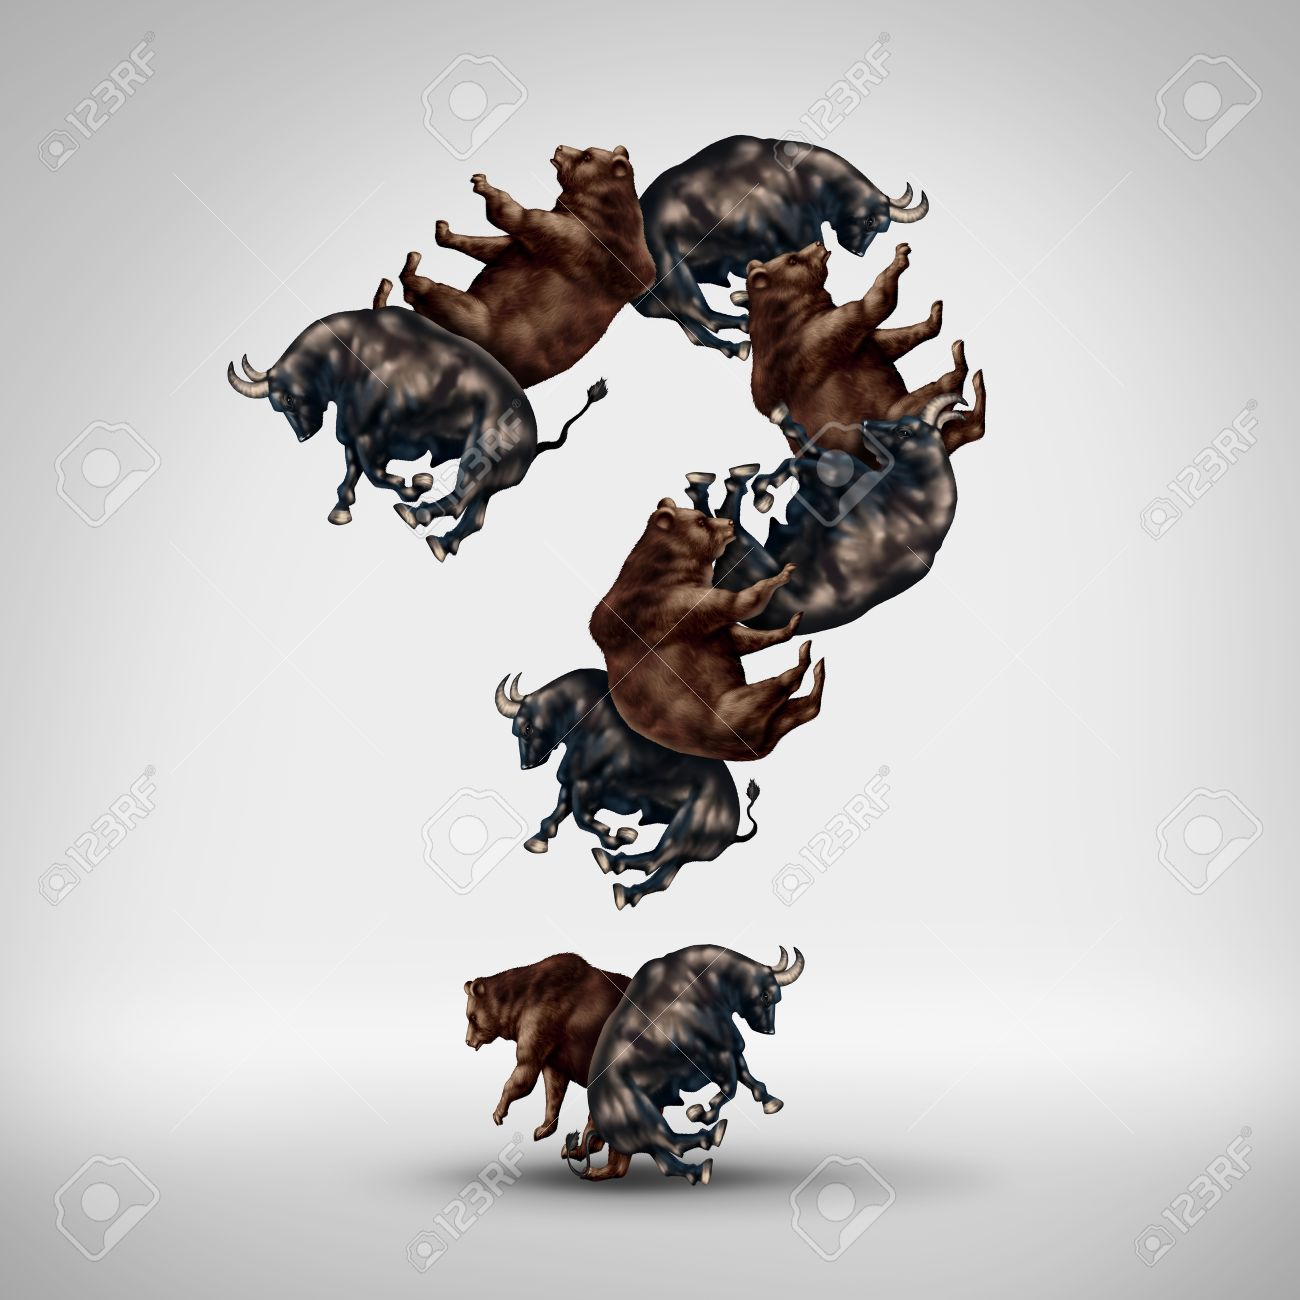 Bulls and bears questions with a stock market bull and bear shaped bulls and bears questions with a stock market bull and bear shaped as a question mark buycottarizona